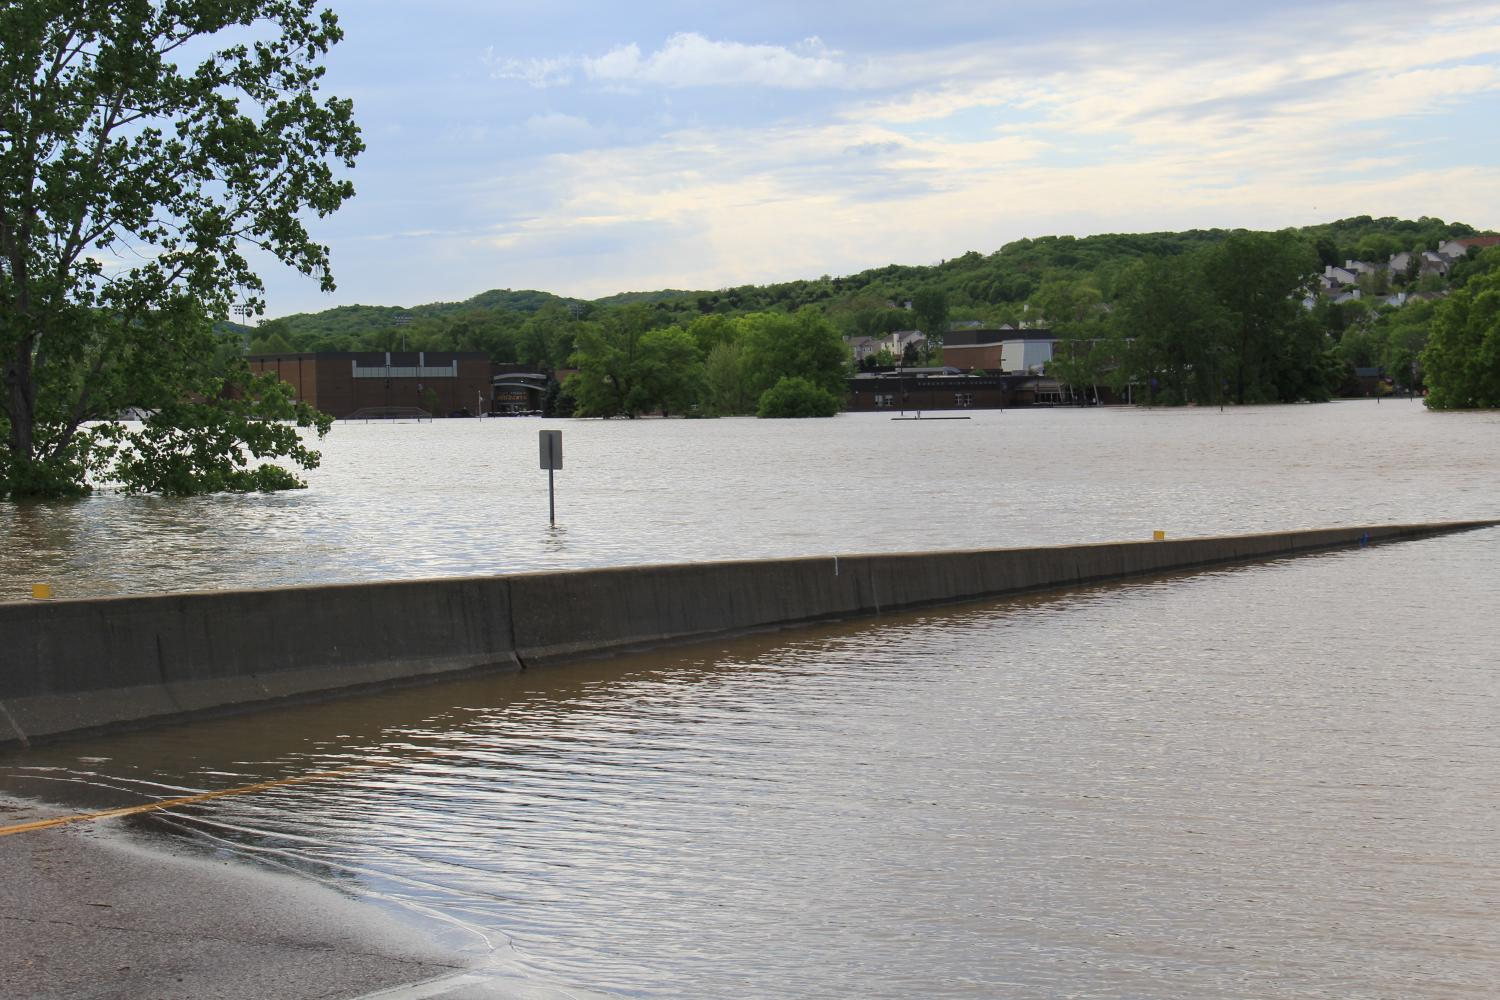 Eureka+High+School%27s+parking+lot+floods+as+water+levels+rise.+Water+has+now+made+it+through+the+sandbags.